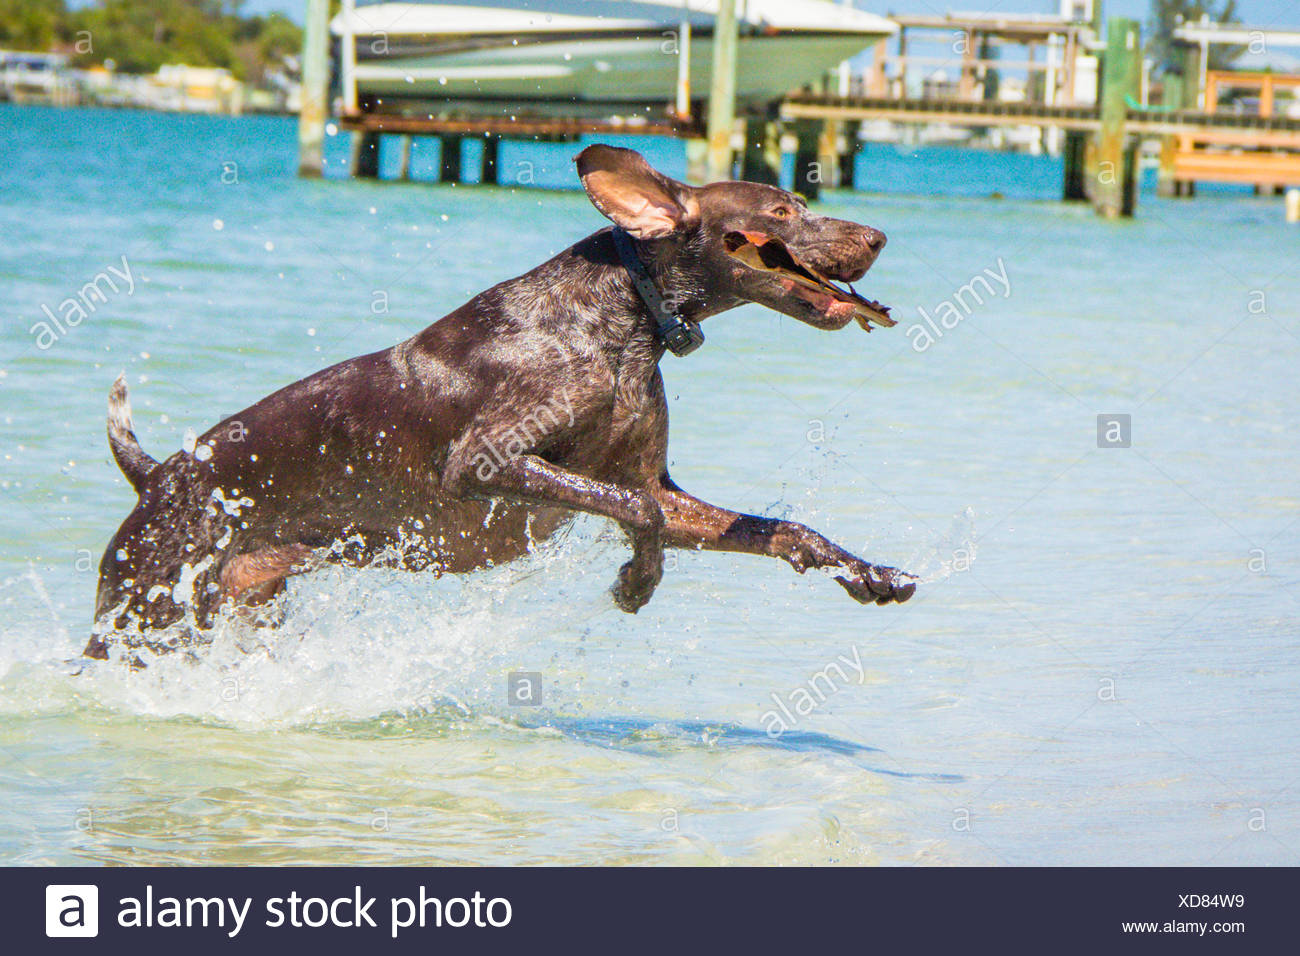 German Shorthaired Pointer Dog Stock Photos & German Shorthaired ...